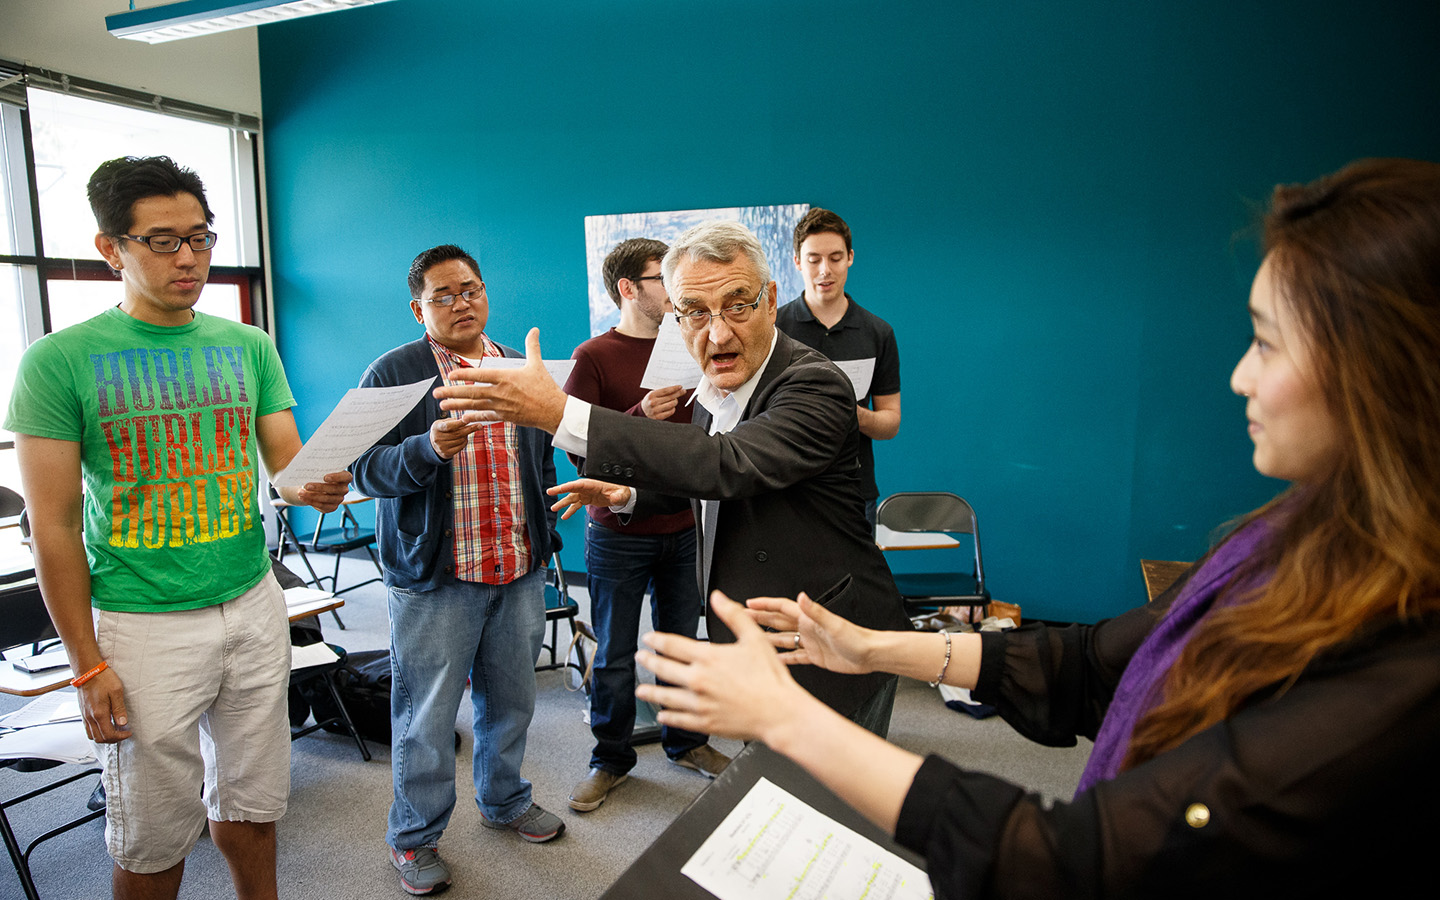 Students and professors engaging in music classroom